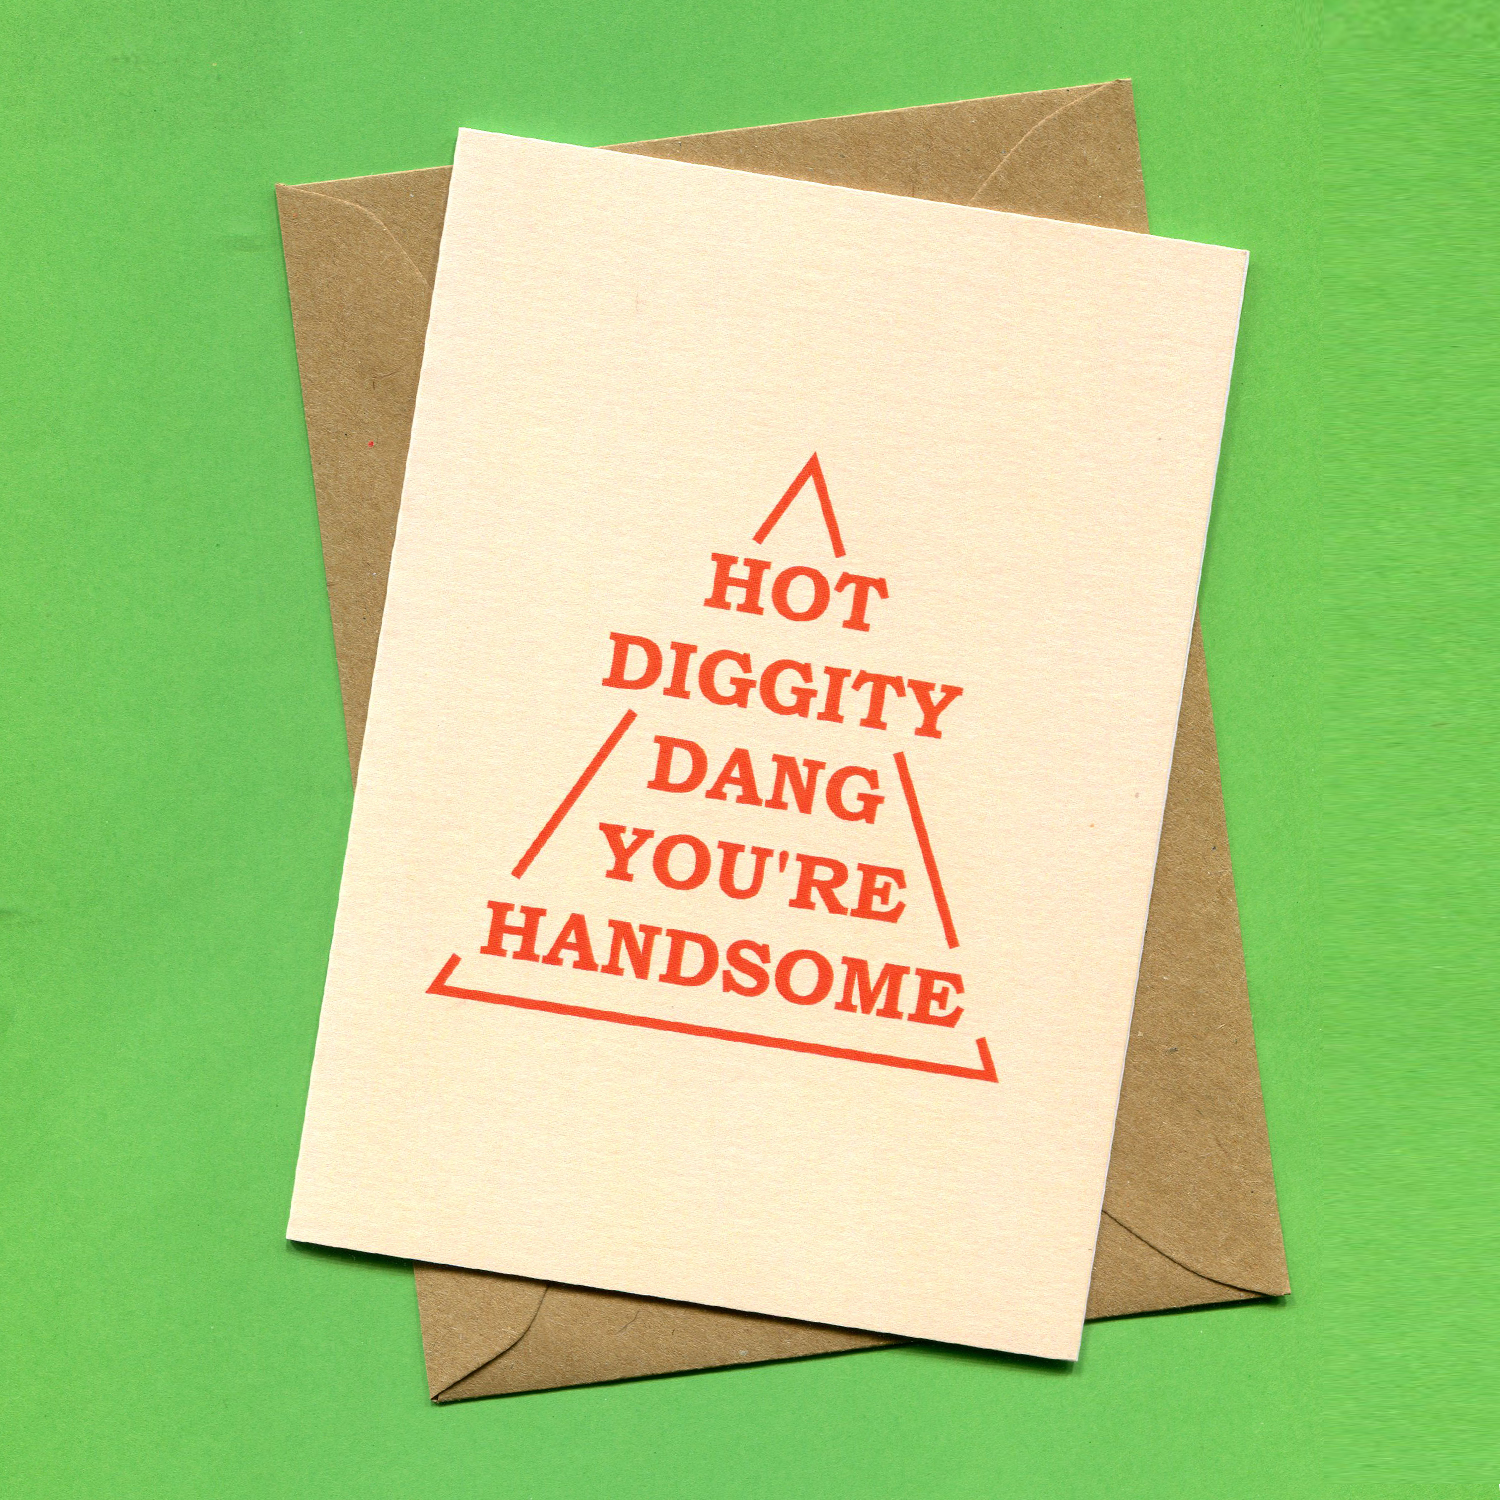 Catalogue_Things by Bean Hot Diggity Dang Youre Handsome Greeting Card.jpg